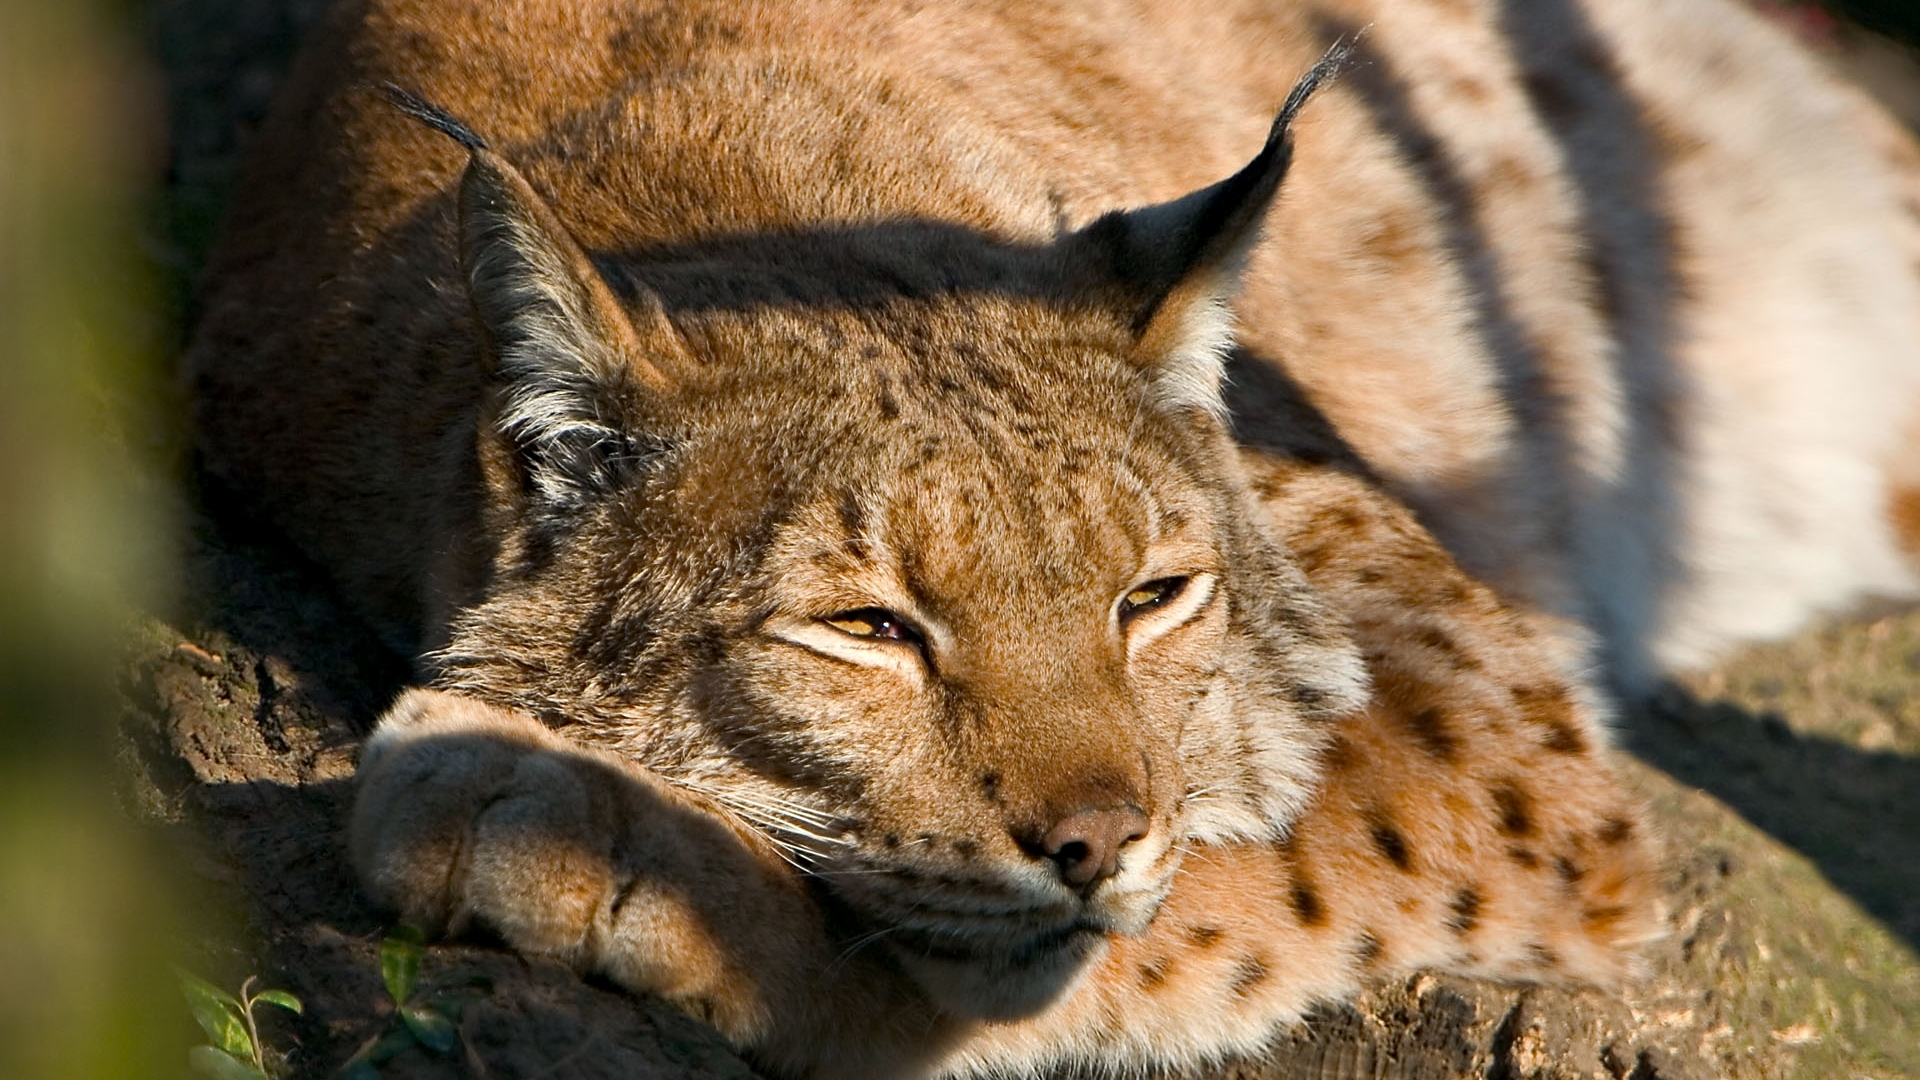 7593 download wallpaper Animals, Bobcats screensavers and pictures for free